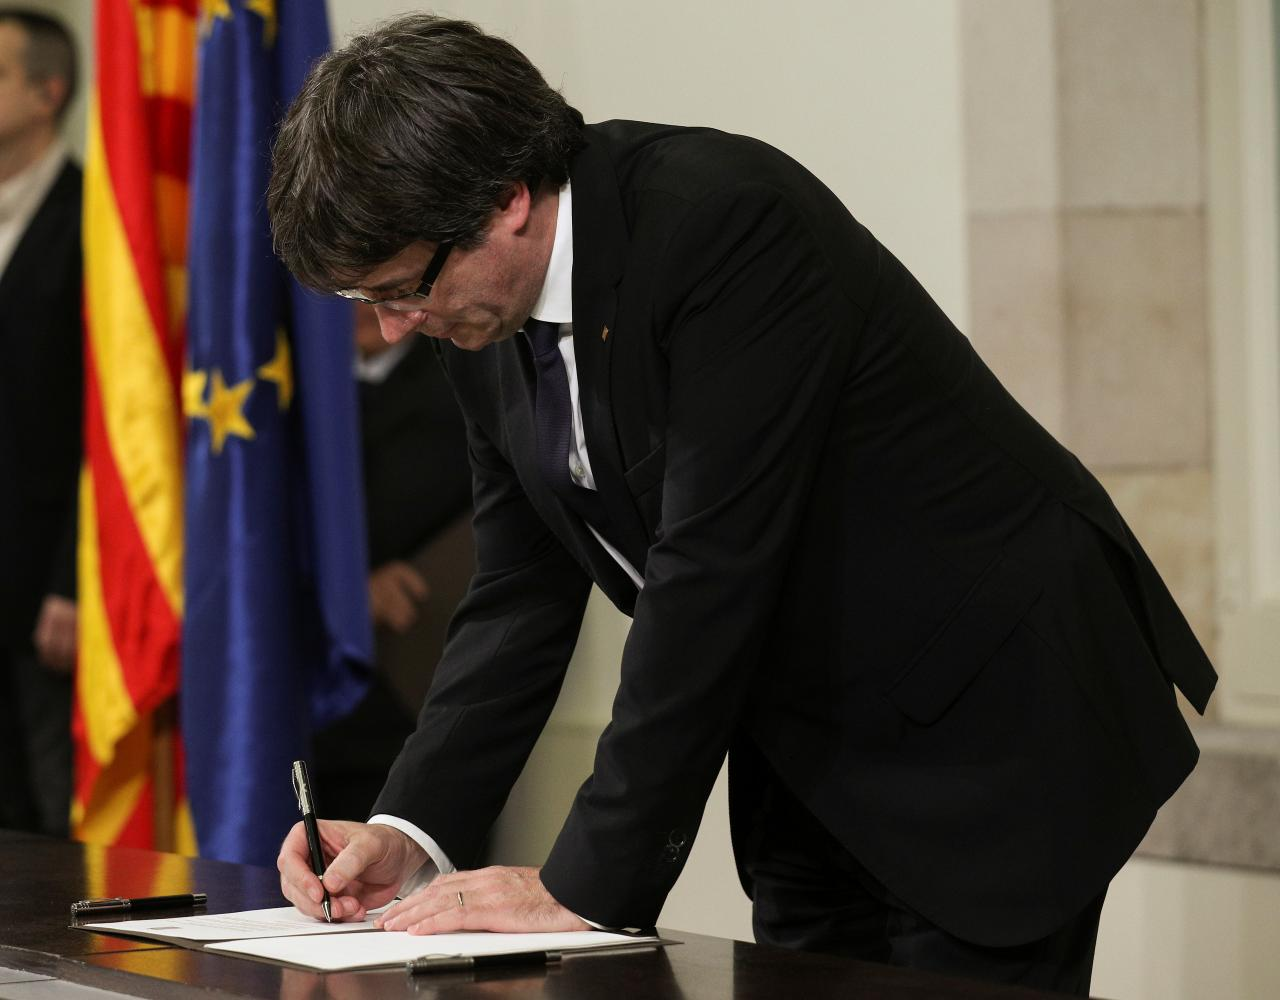 Spain set to impose direct rule on Catalonia